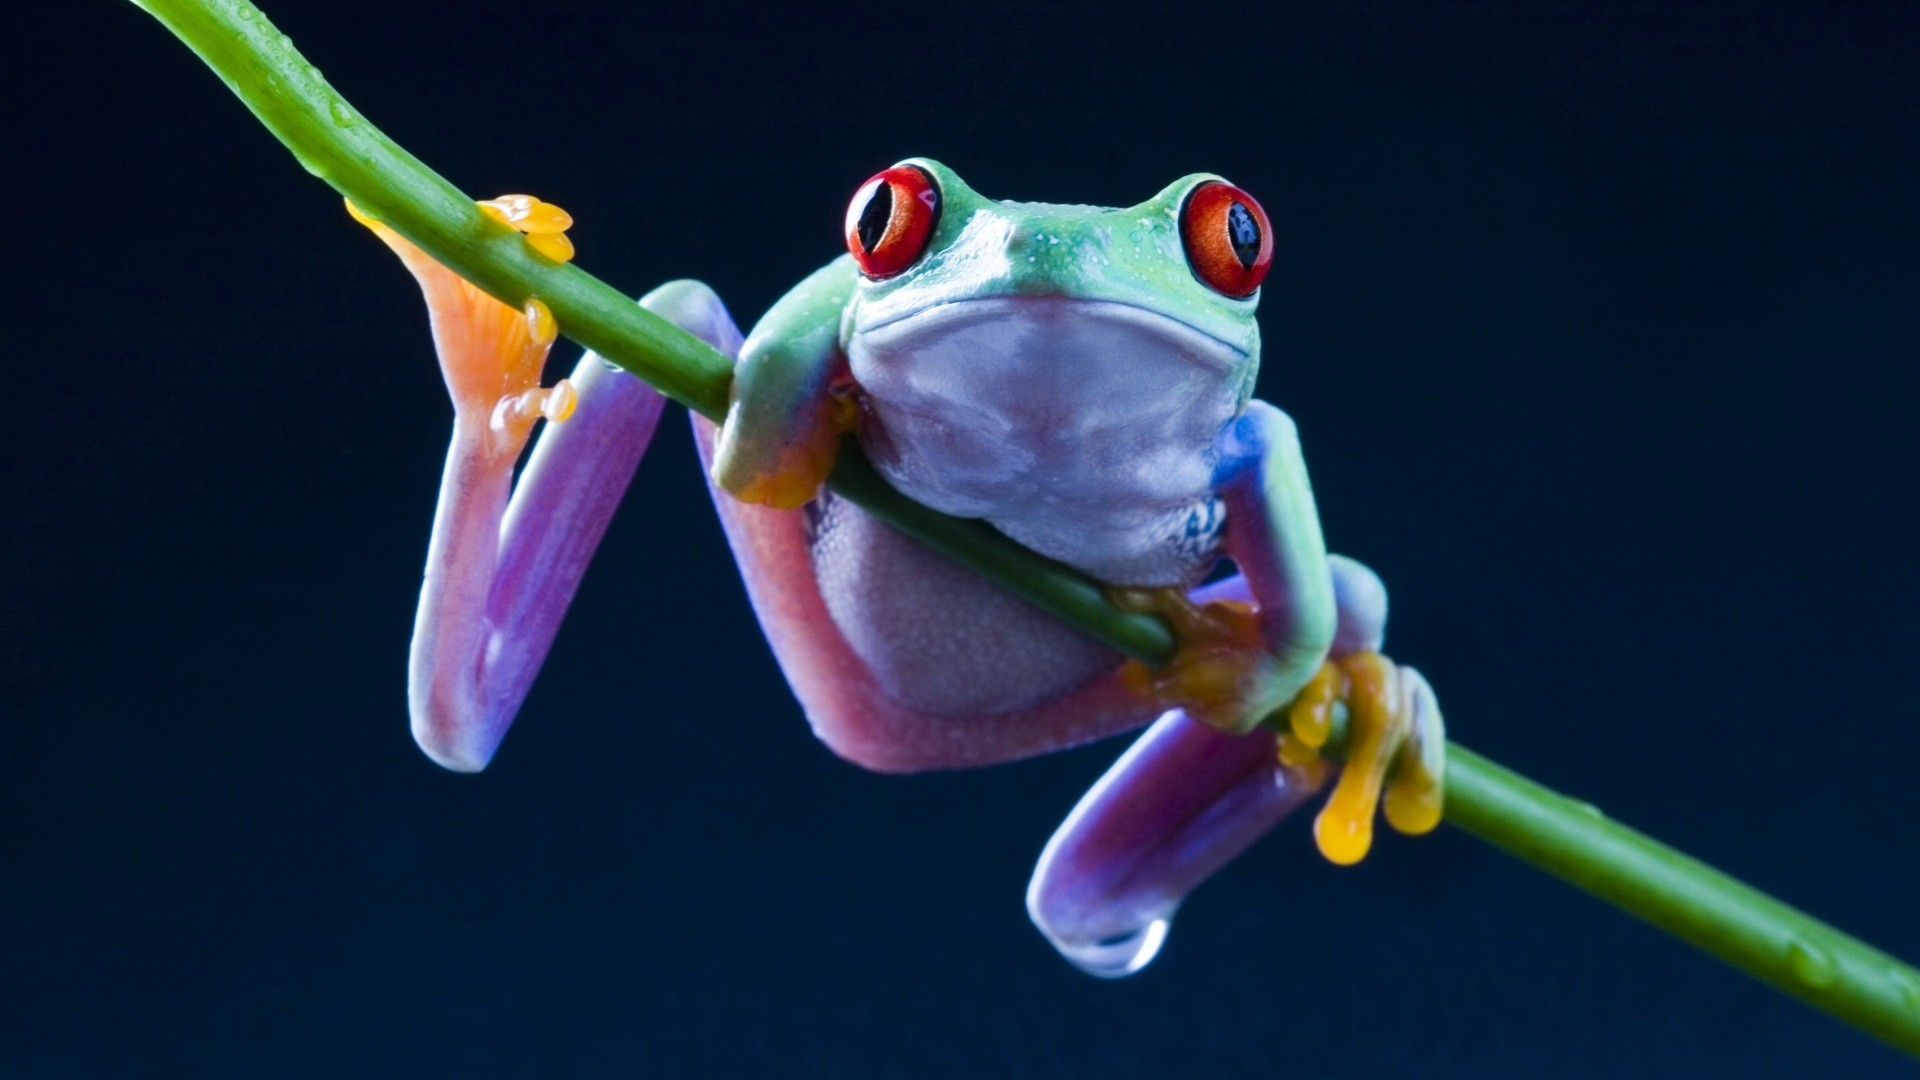 Res: 1920x1080, Tree Frog Wallpapers 14 - 1920 X 1080